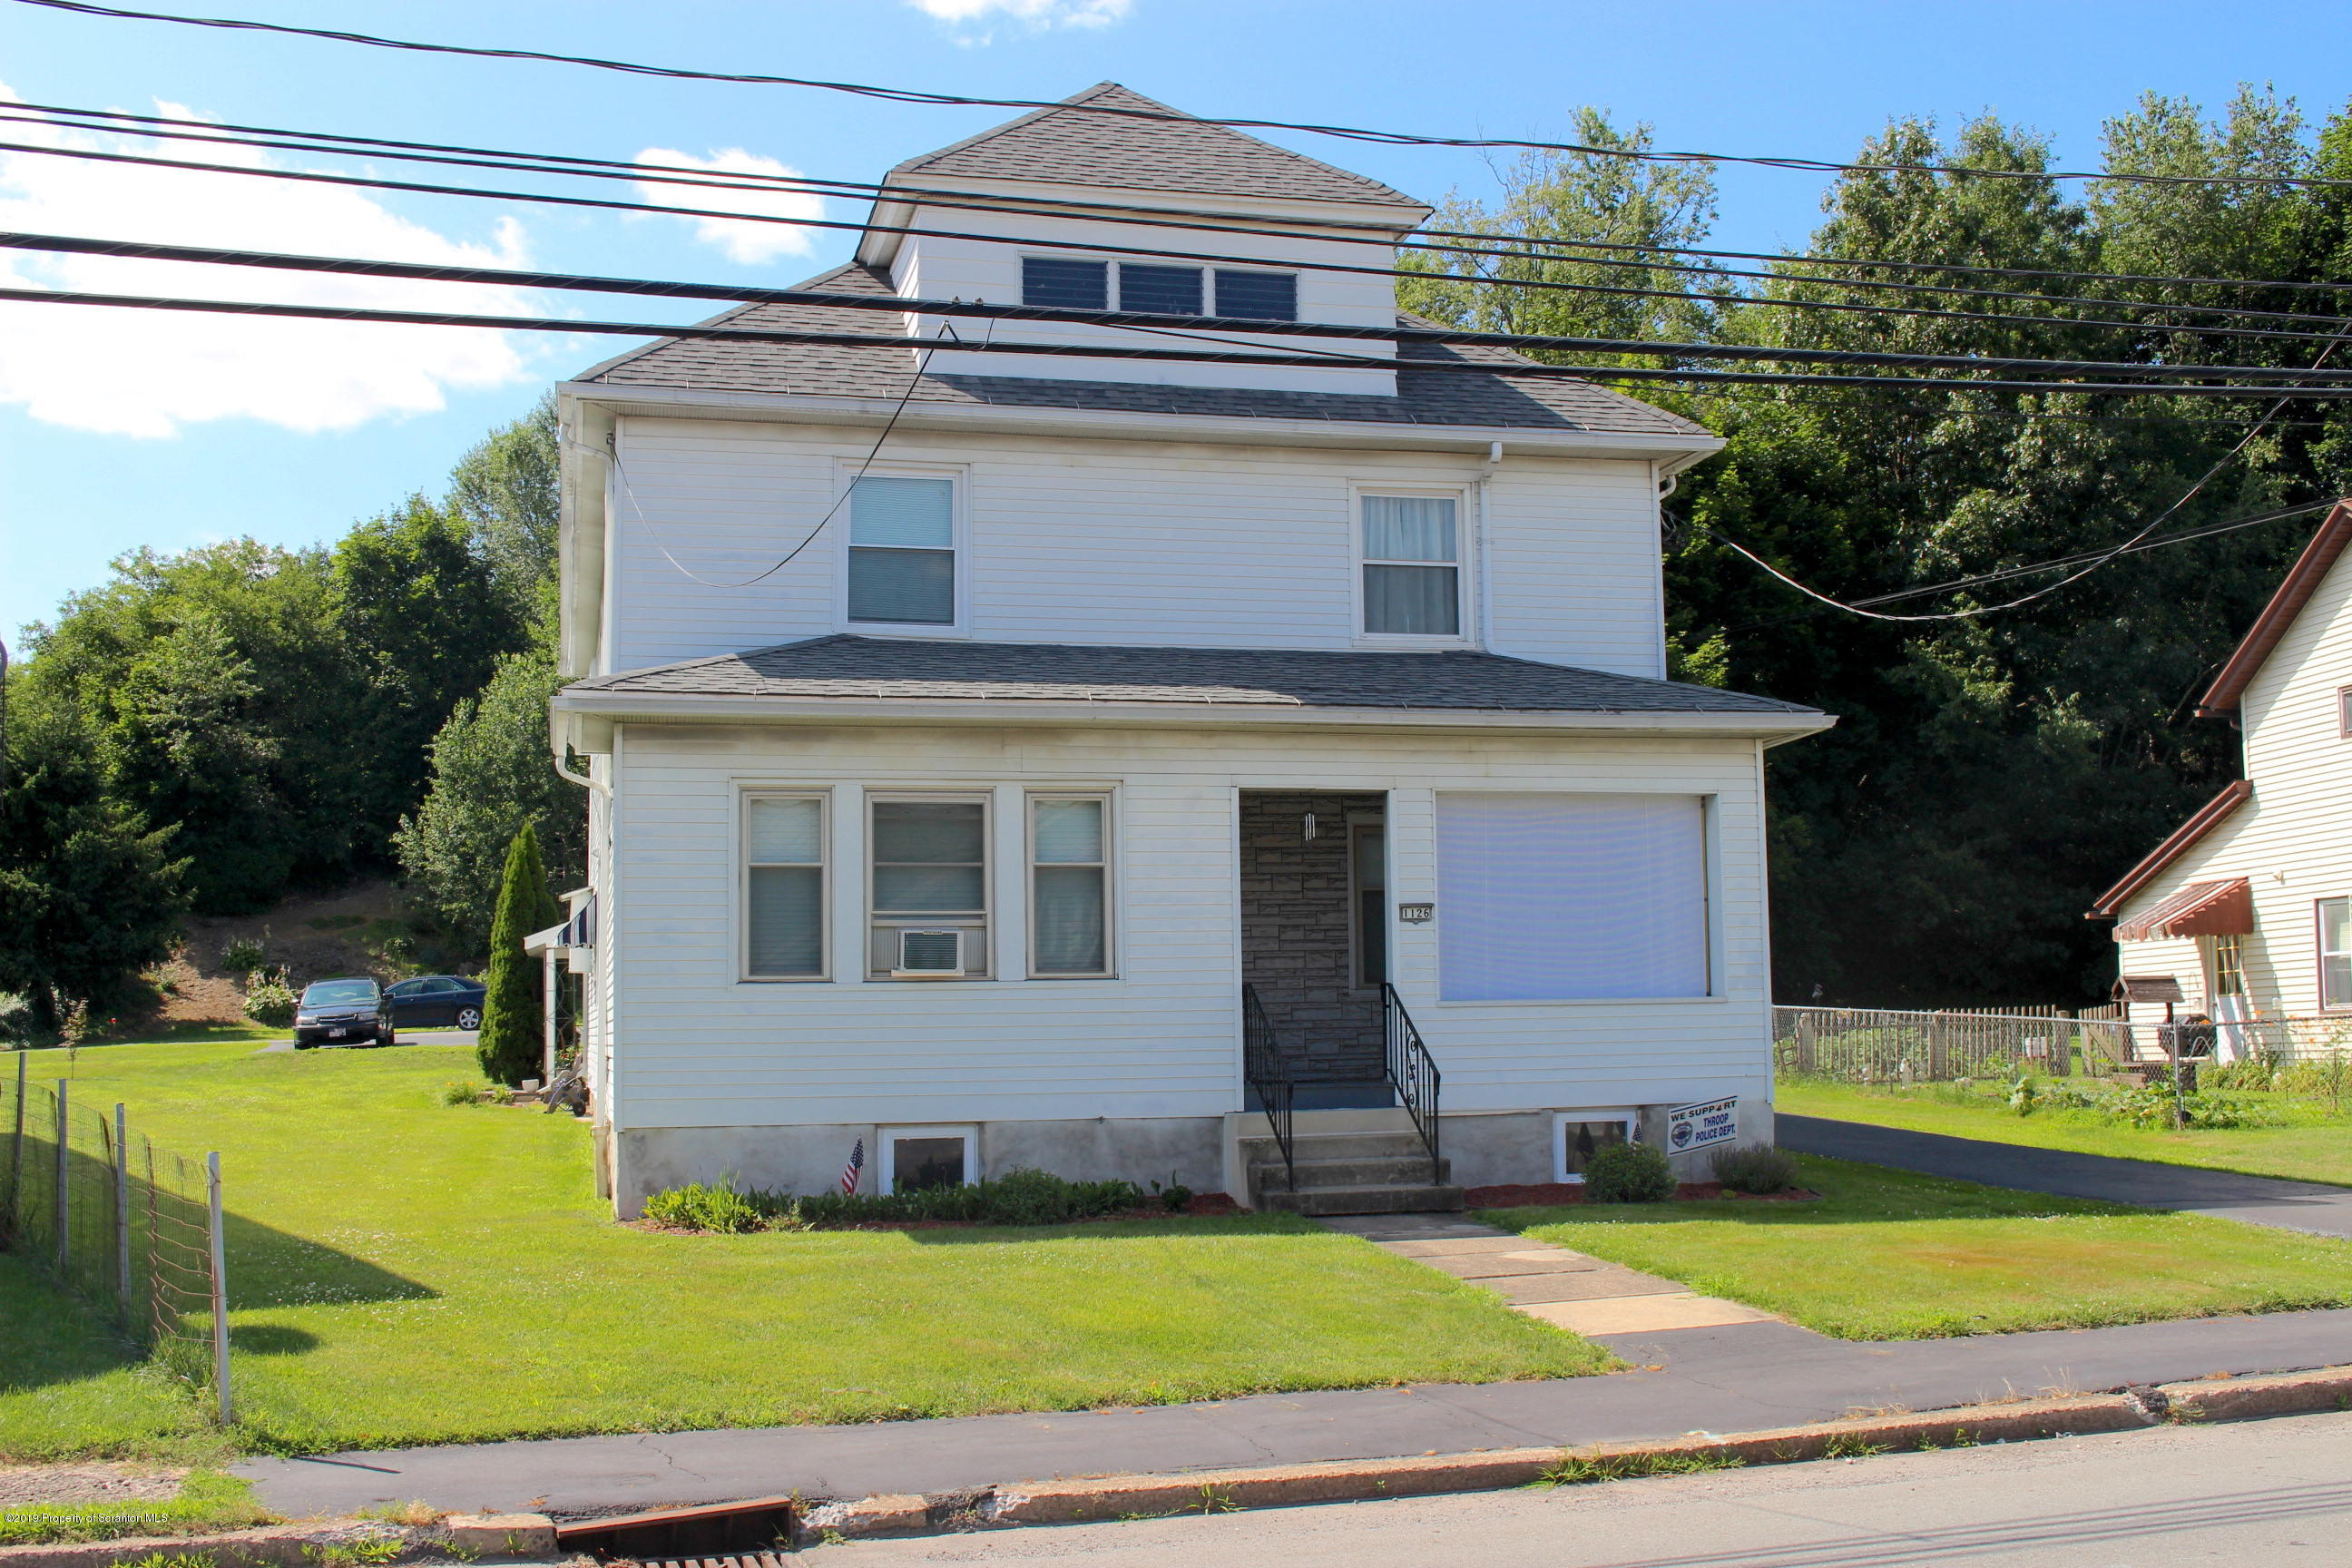 1126 Valley Ave, Throop, Pennsylvania 18512, 1 Bedroom Bedrooms, 5 Rooms Rooms,1 BathroomBathrooms,Rental,For Lease,Valley,19-3350